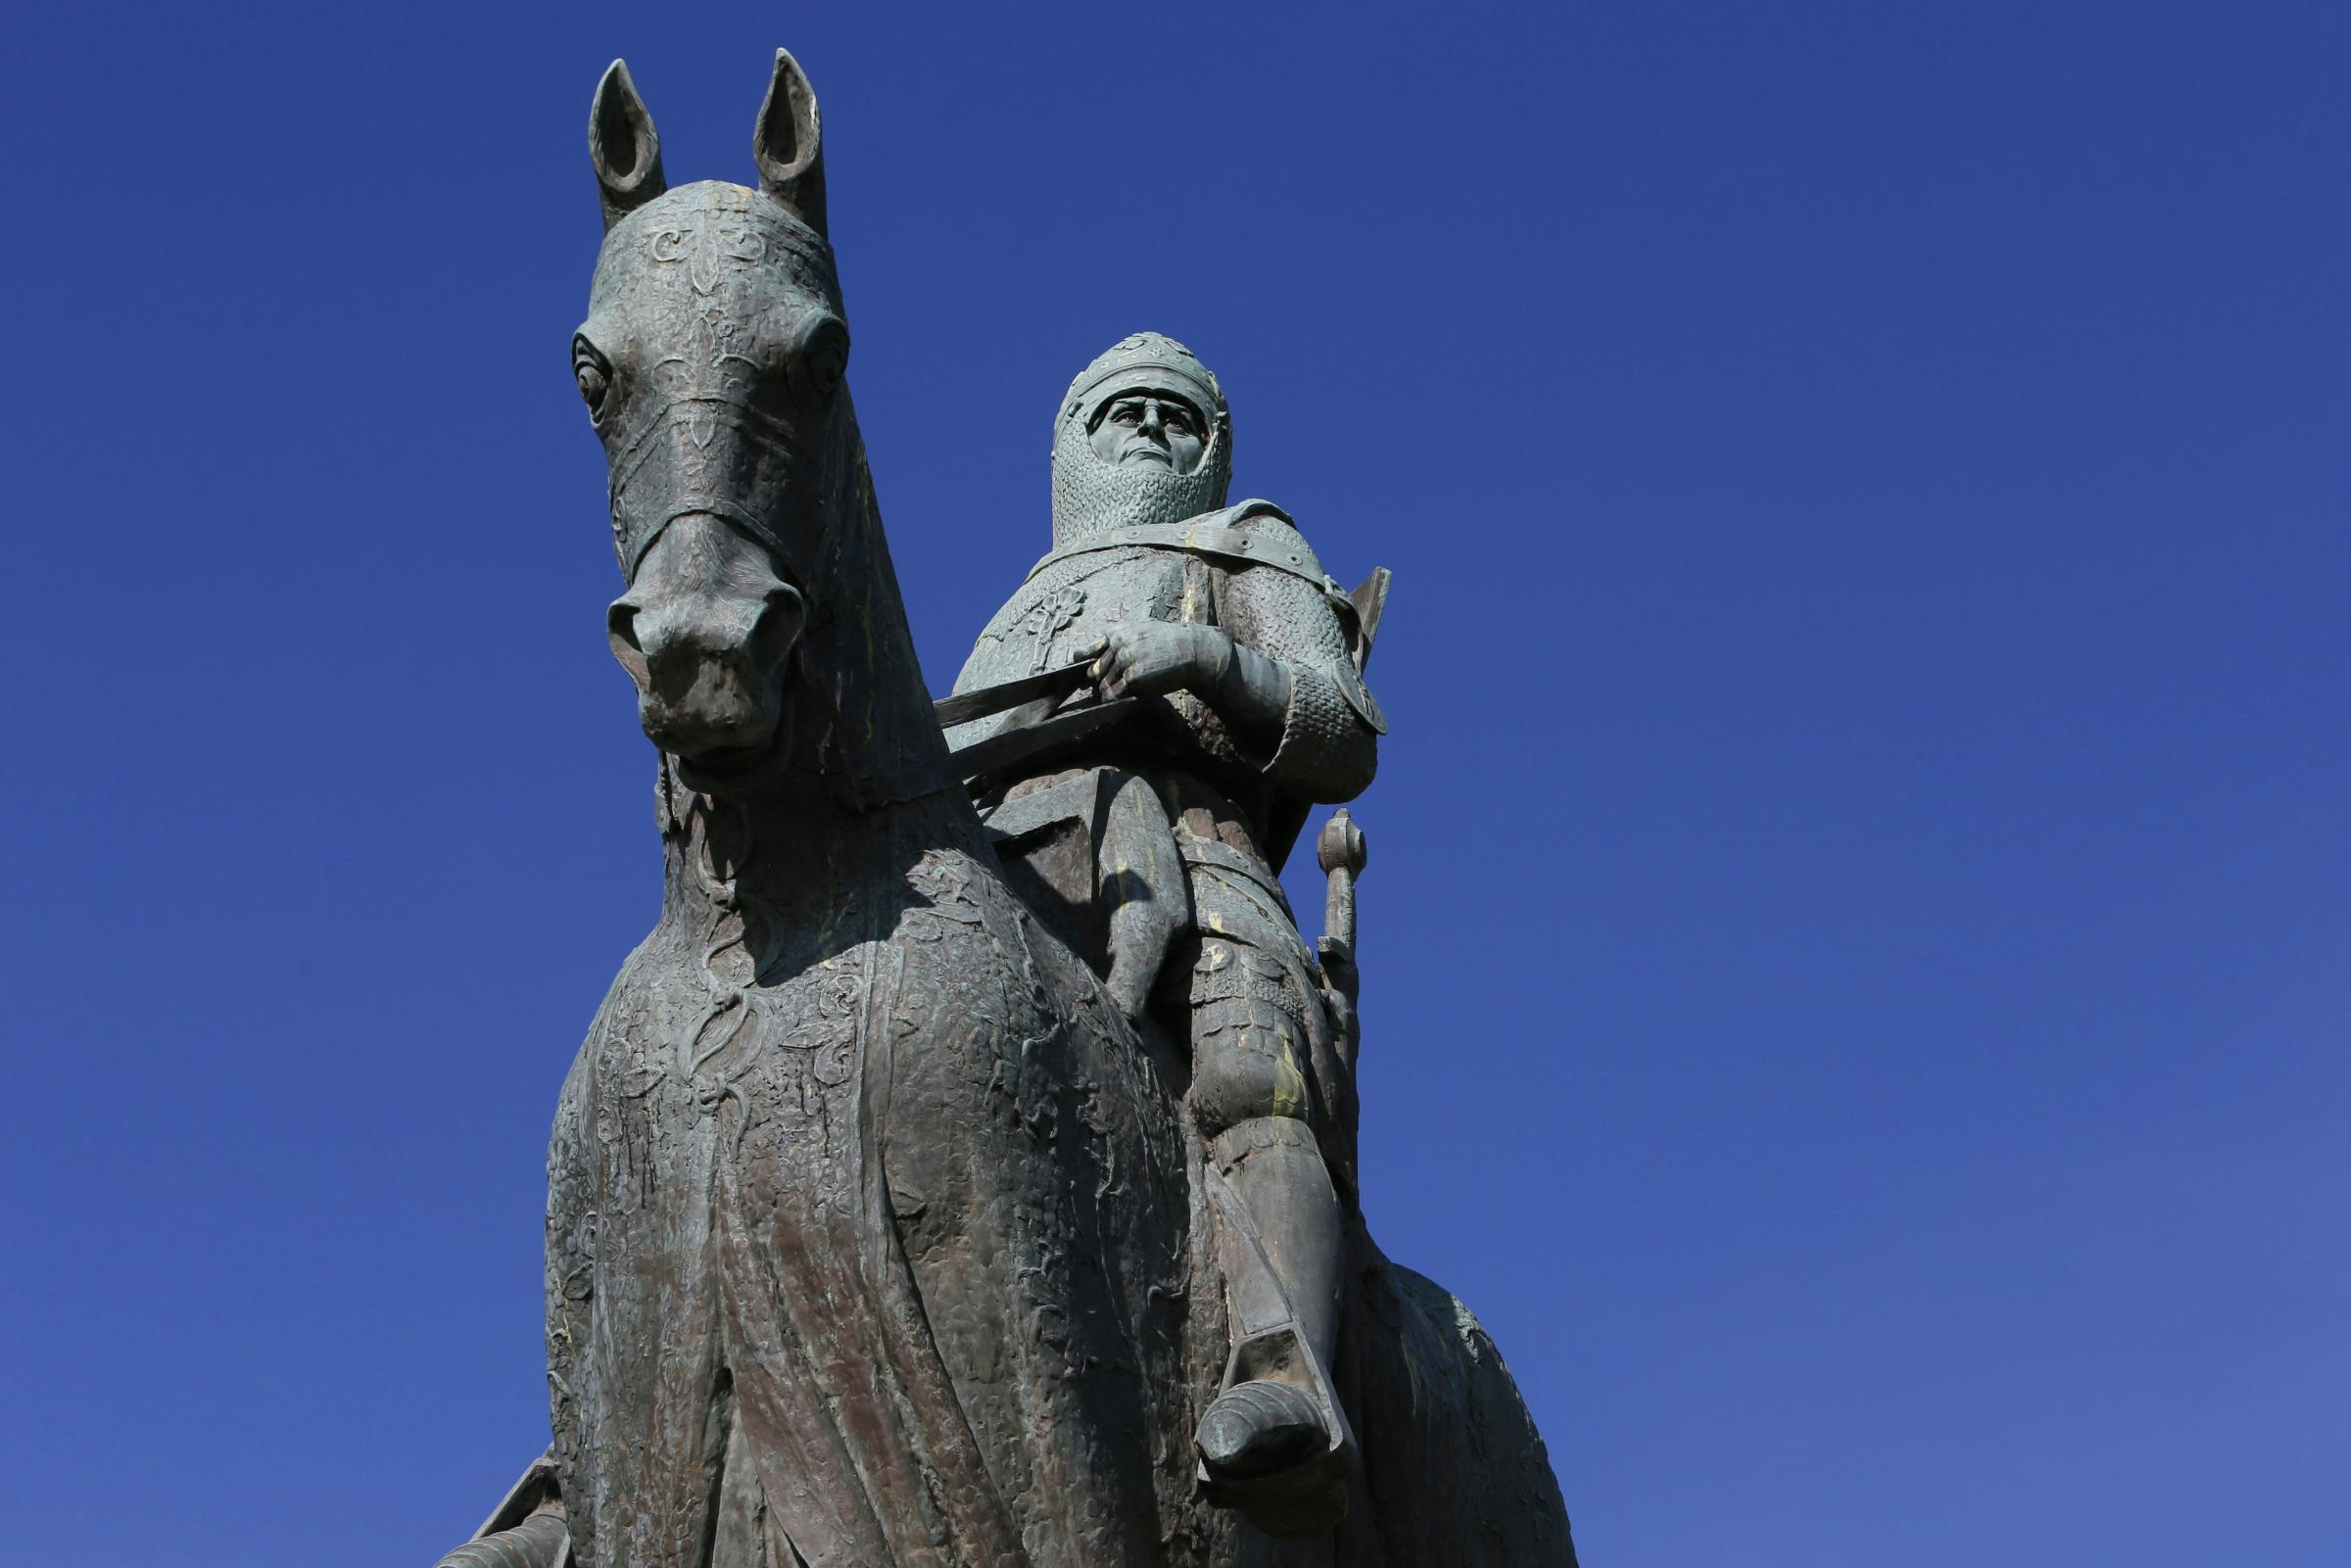 The statue of Robert the Bruce will be the destination of the All Under One Banner march marking the anniversary of the Battle of Bannockburn